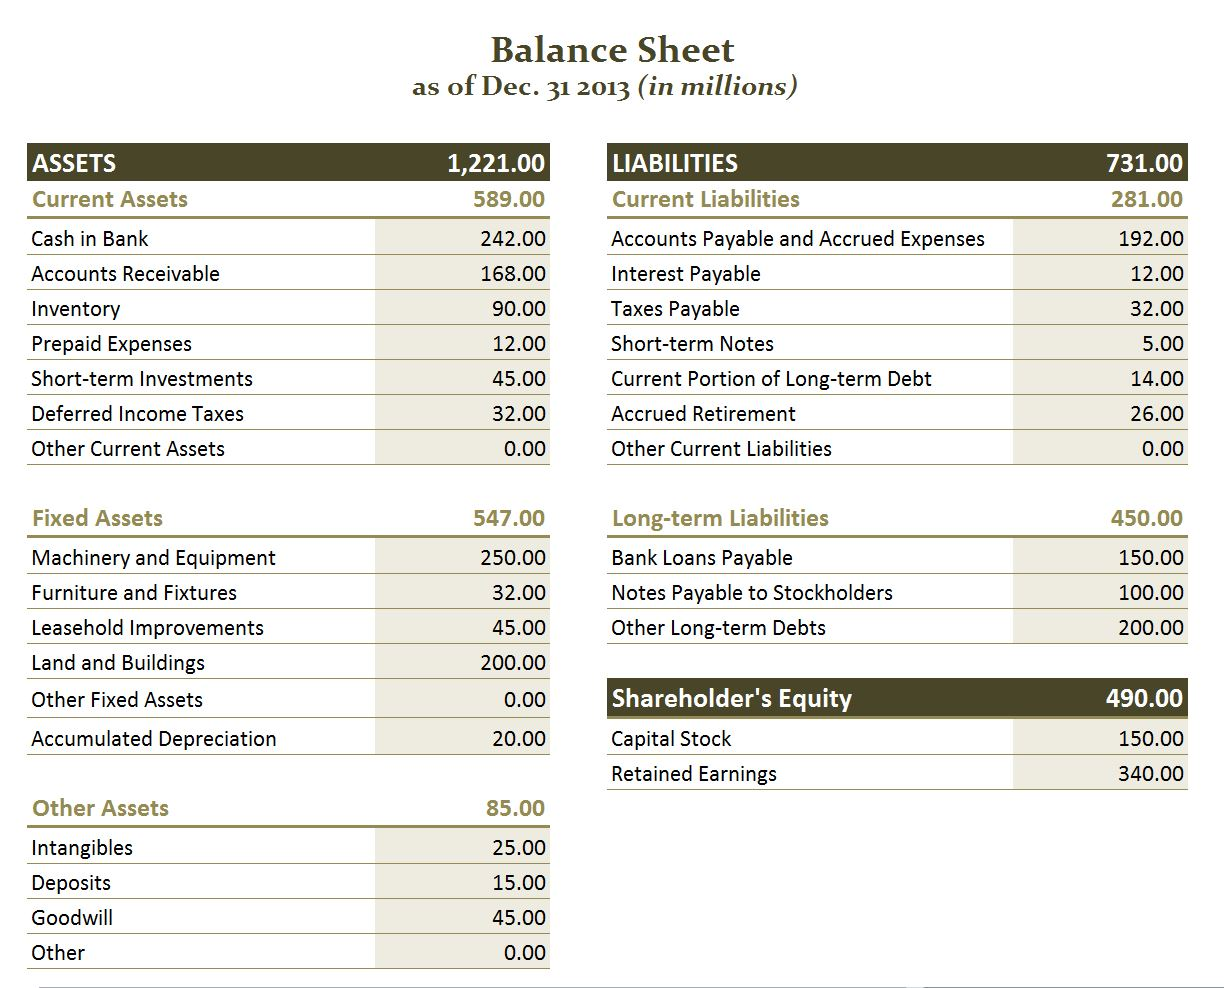 balance sheet analysis of joint stock Updated annual balance sheet for nvidia corp - inluding nvda assets, cash, debt, liabilities & shareholder equity, investments, retained earnings and more  real-time last sale data for us.